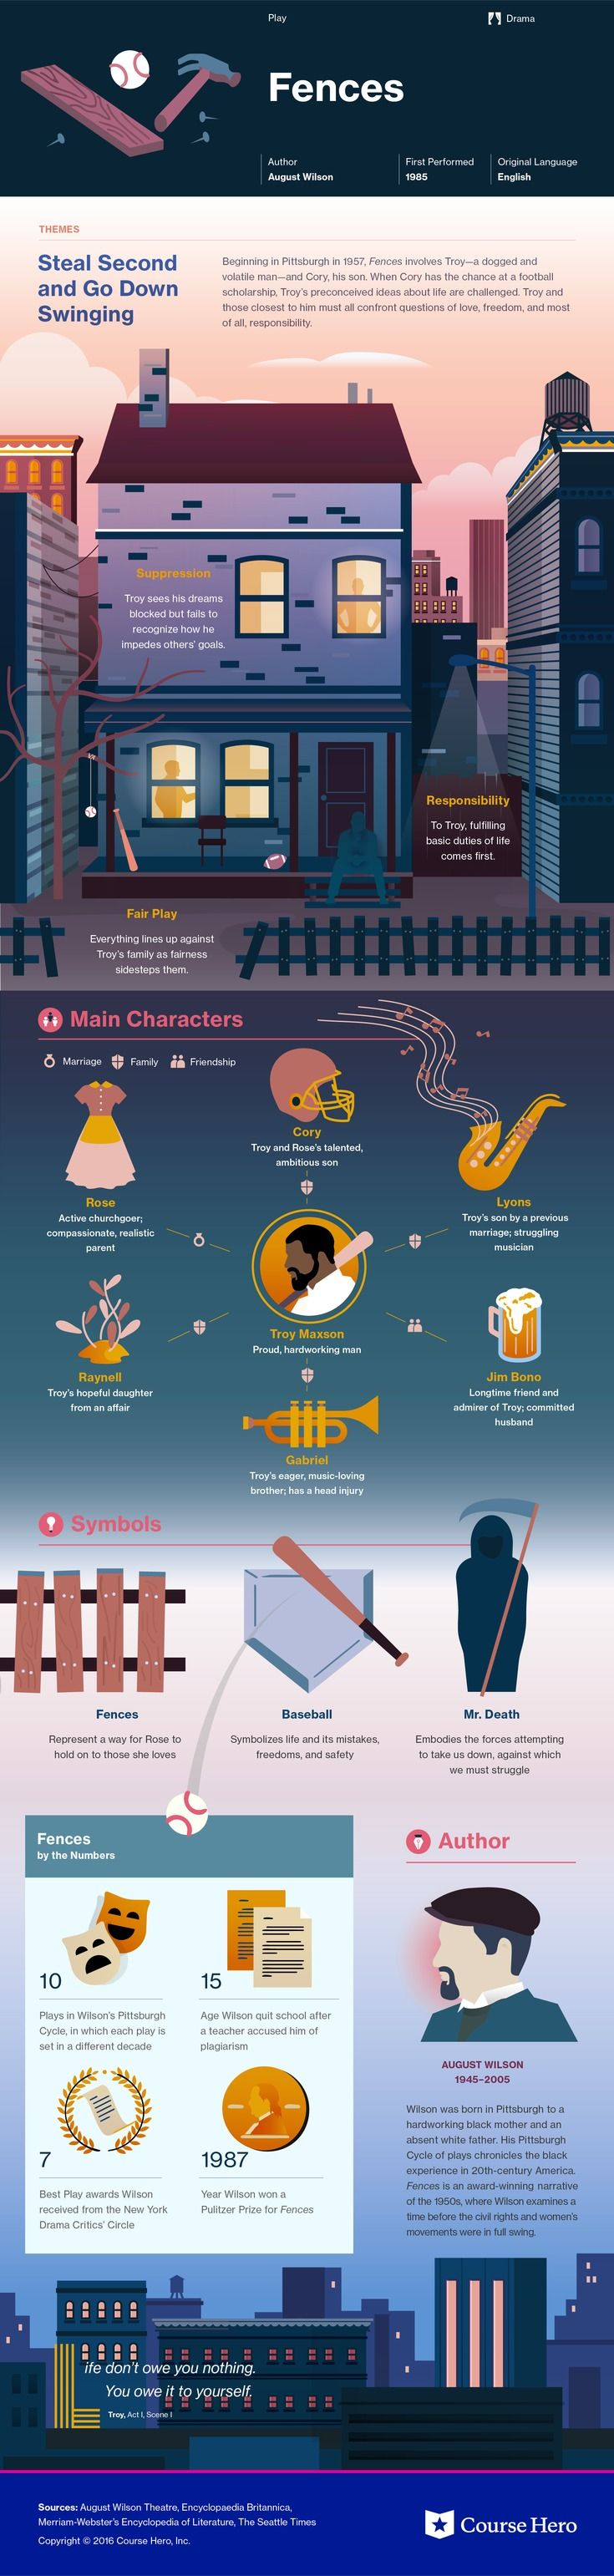 This @CourseHero infographic on Fences is both visually stunning and informative!